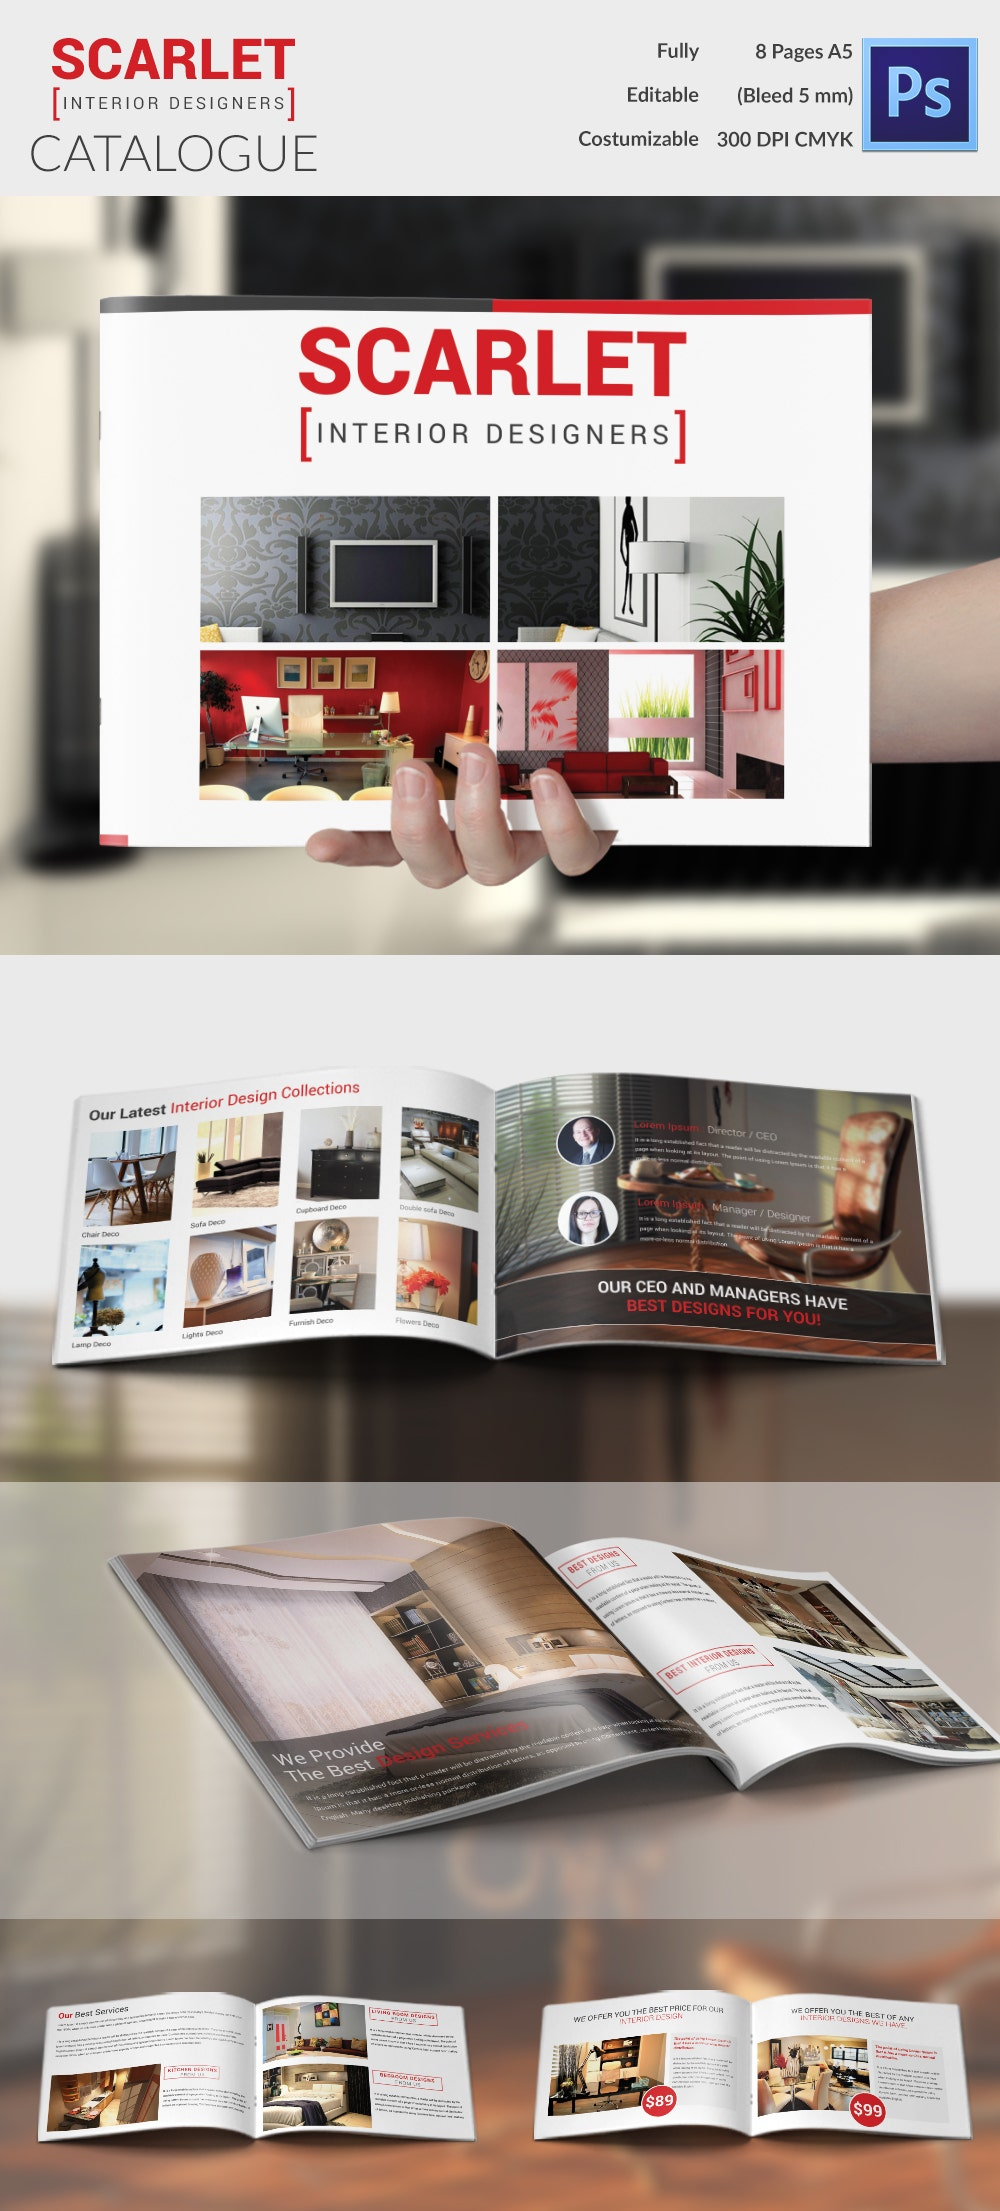 Interior Design A5 vCatalogue